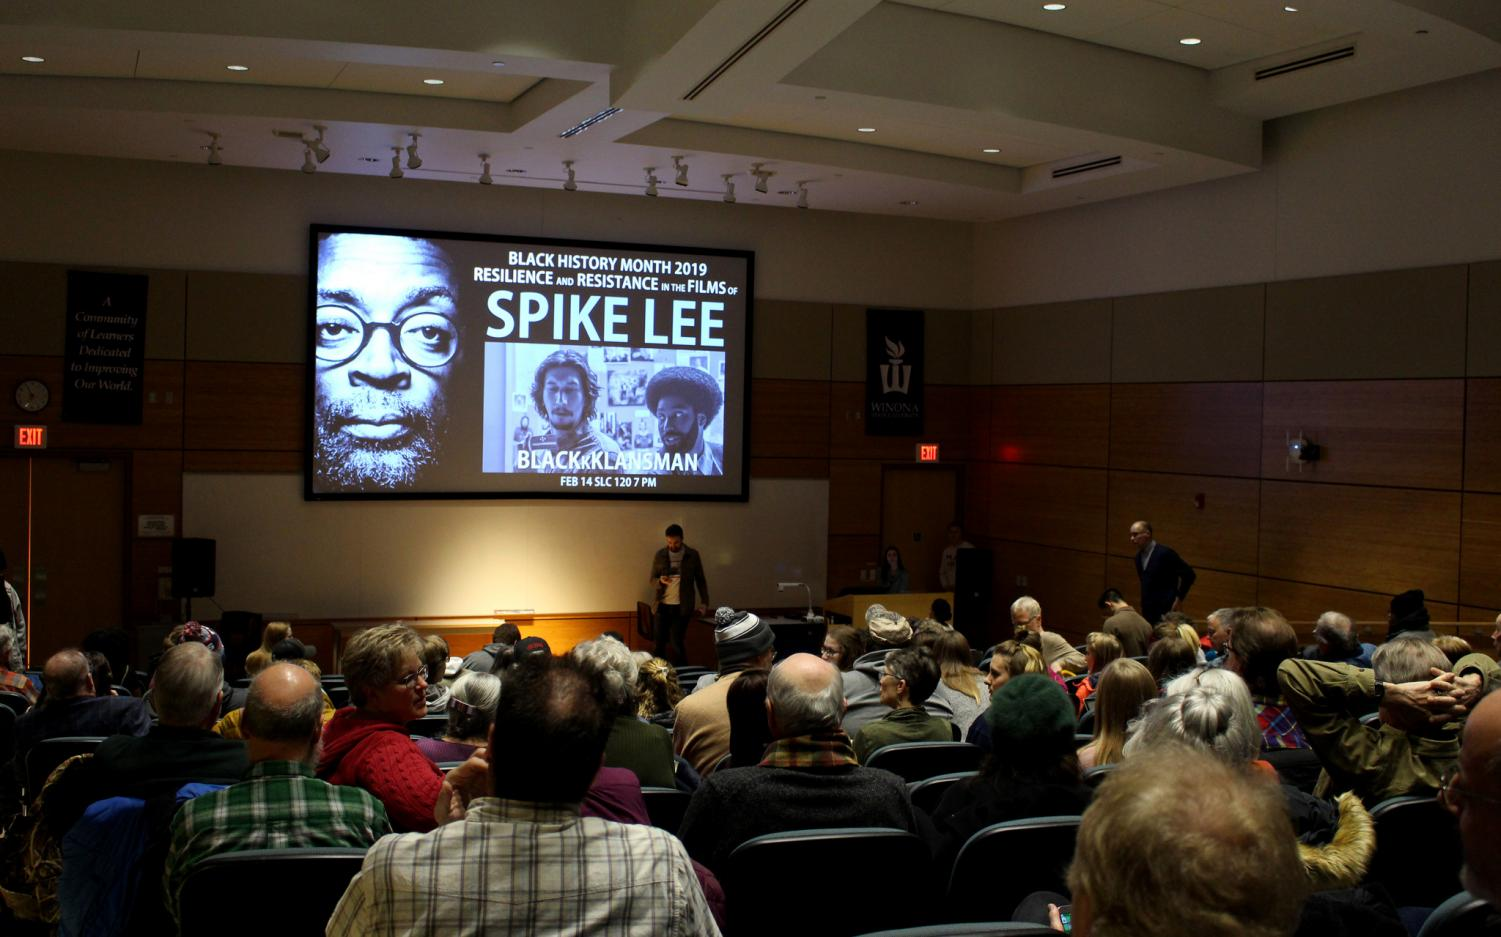 """Winona State students and community members await the beginning of """"BlacKkKlansman,"""" directed by Spike Lee. The movie showing is part of the Resilience series in honor of Black History Month."""